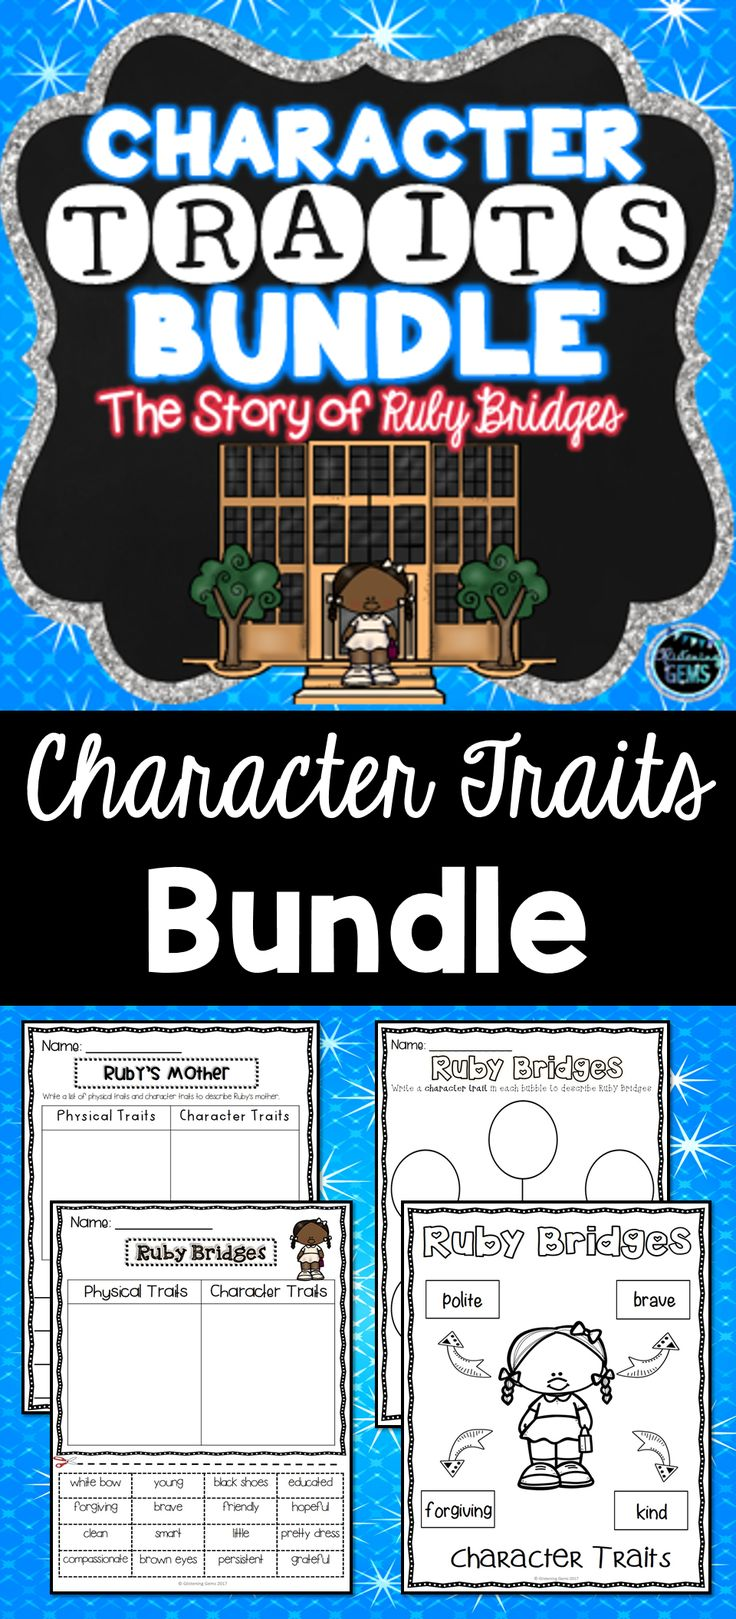 Ruby Bridges Character Traits Bundle - 5 products included, save 25% off! No prep printables, graphic organizers/word maps, task cards, sorting activities and character traits game.